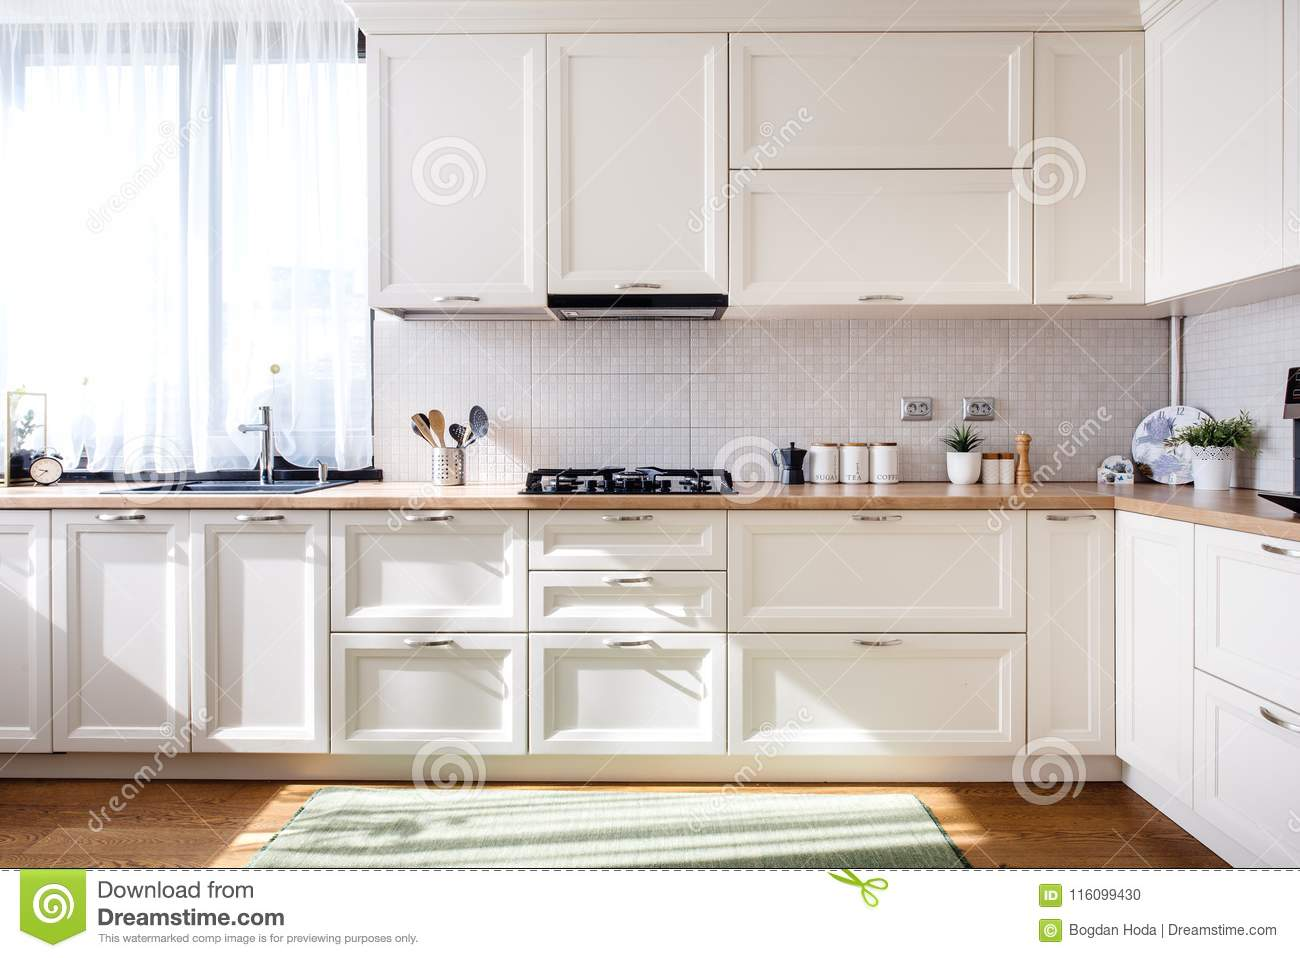 Modern Kitchen Interior Design With White Furniture And Modern Details Stock Photo Image Of Coffee Indoors 116099430